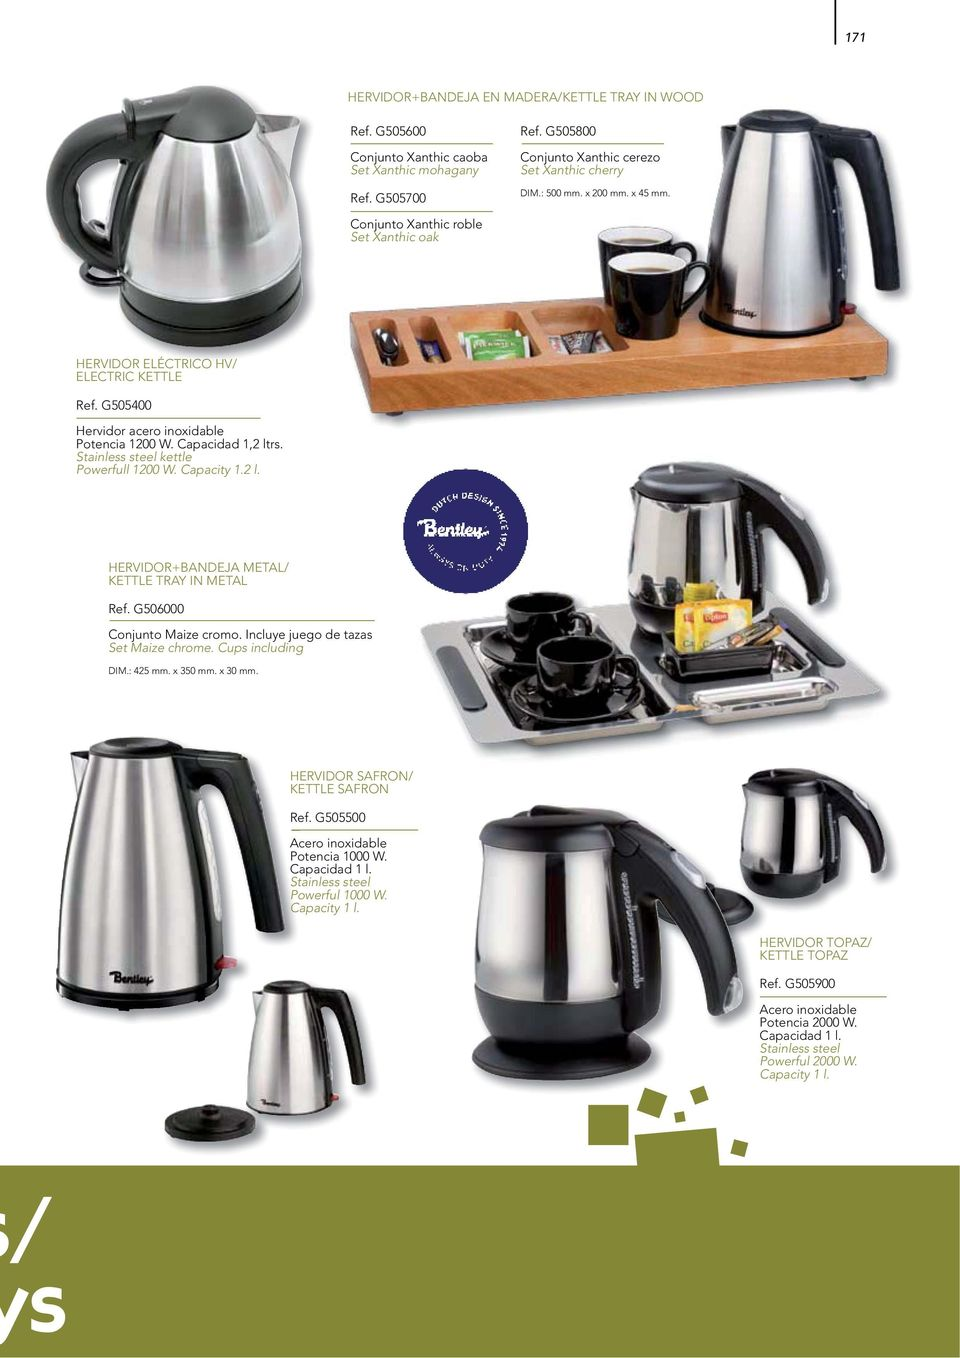 Stainless steel kettle Powerfull 1200 W. Capacity 1.2 l. HERVIDOR+BANDEJA METAL/ KETTLE TRAY IN METAL Ref. G506000 Conjunto Maize cromo. Incluye juego de tazas Set Maize chrome. Cups including DIM.